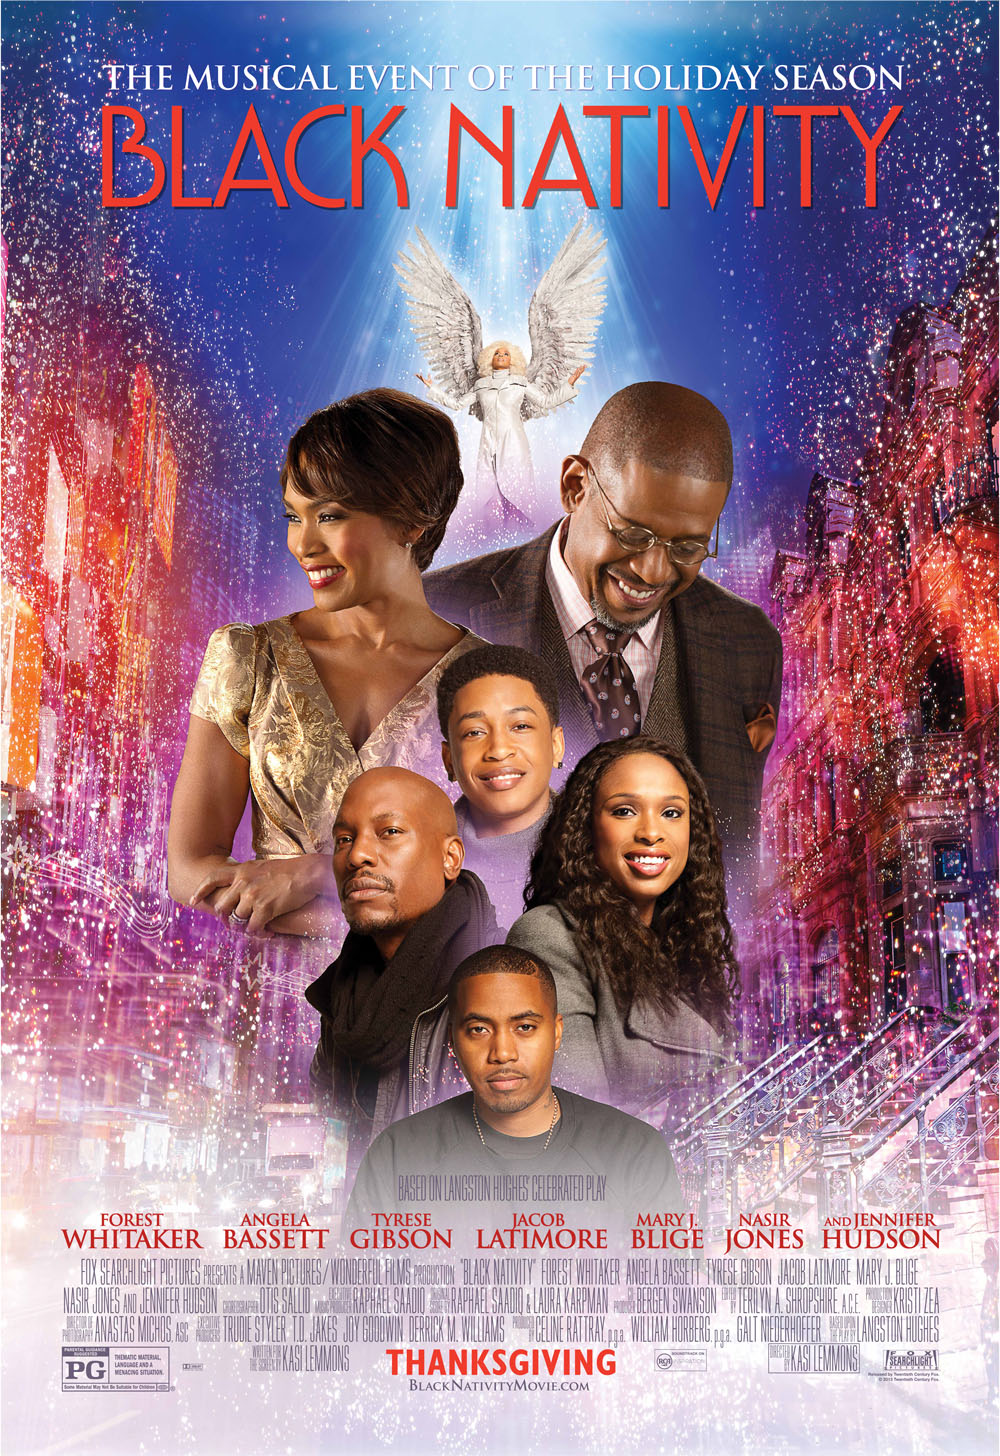 Black Nativity -Sweepstakes